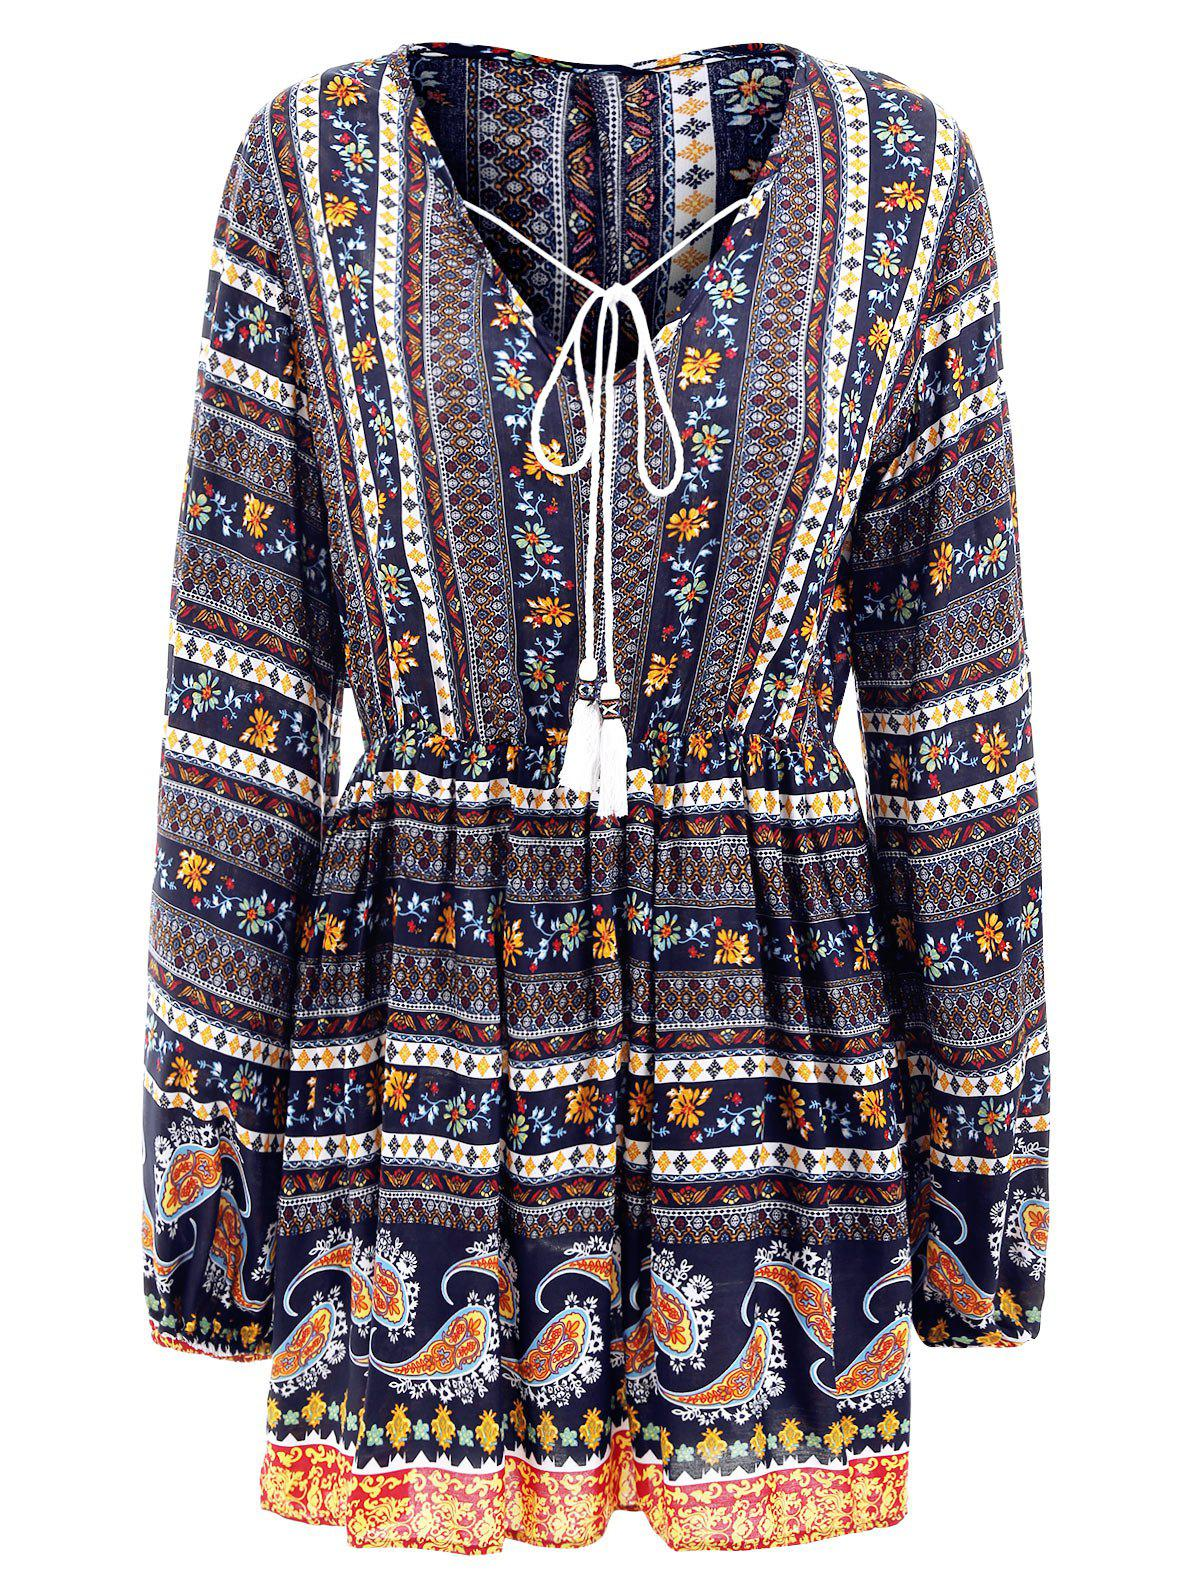 Elastic Waist Long Sleeve Bohemia Print Dress - CADETBLUE L